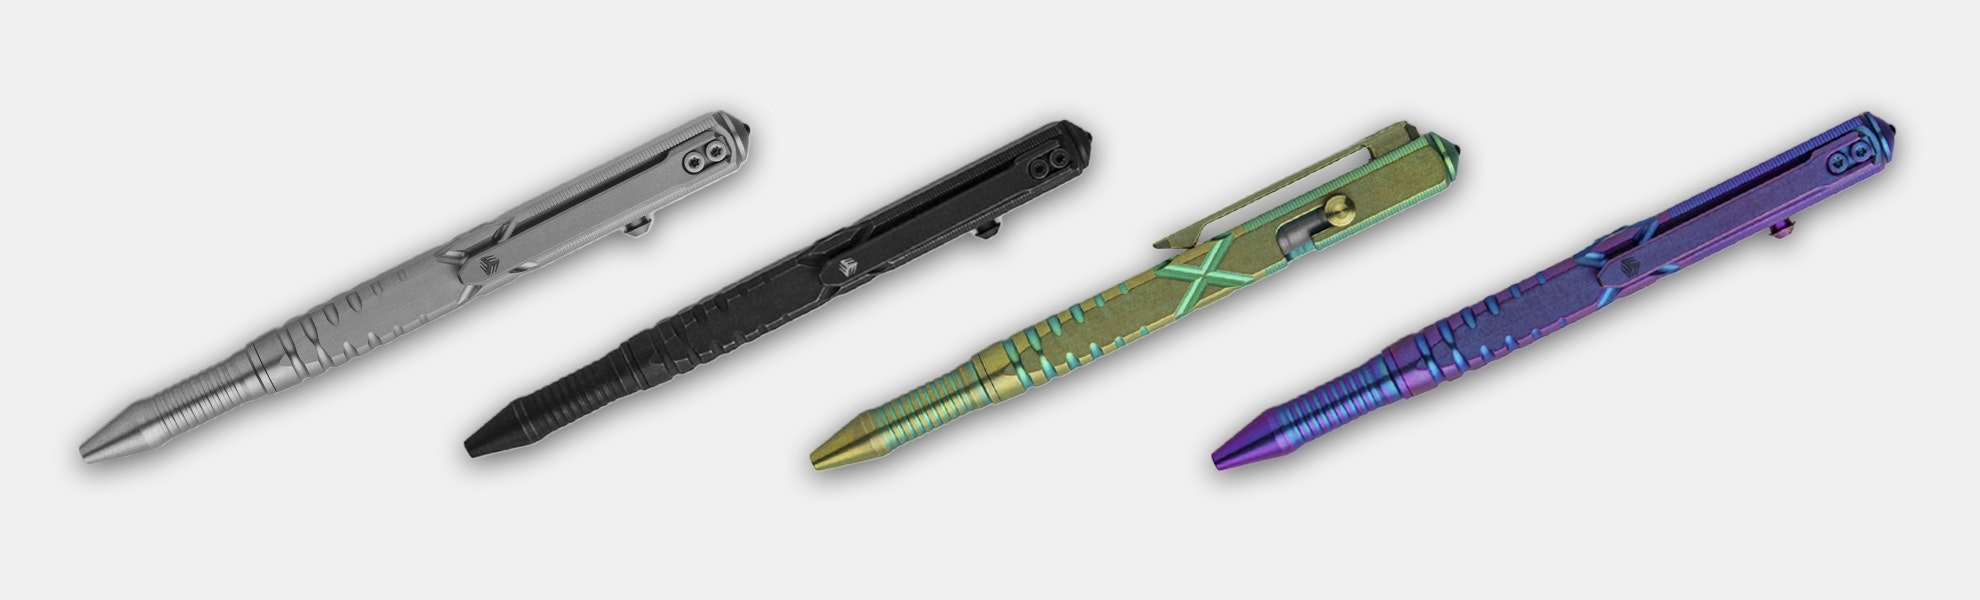 WE Knife Tactical TP-02 Titanium Pen